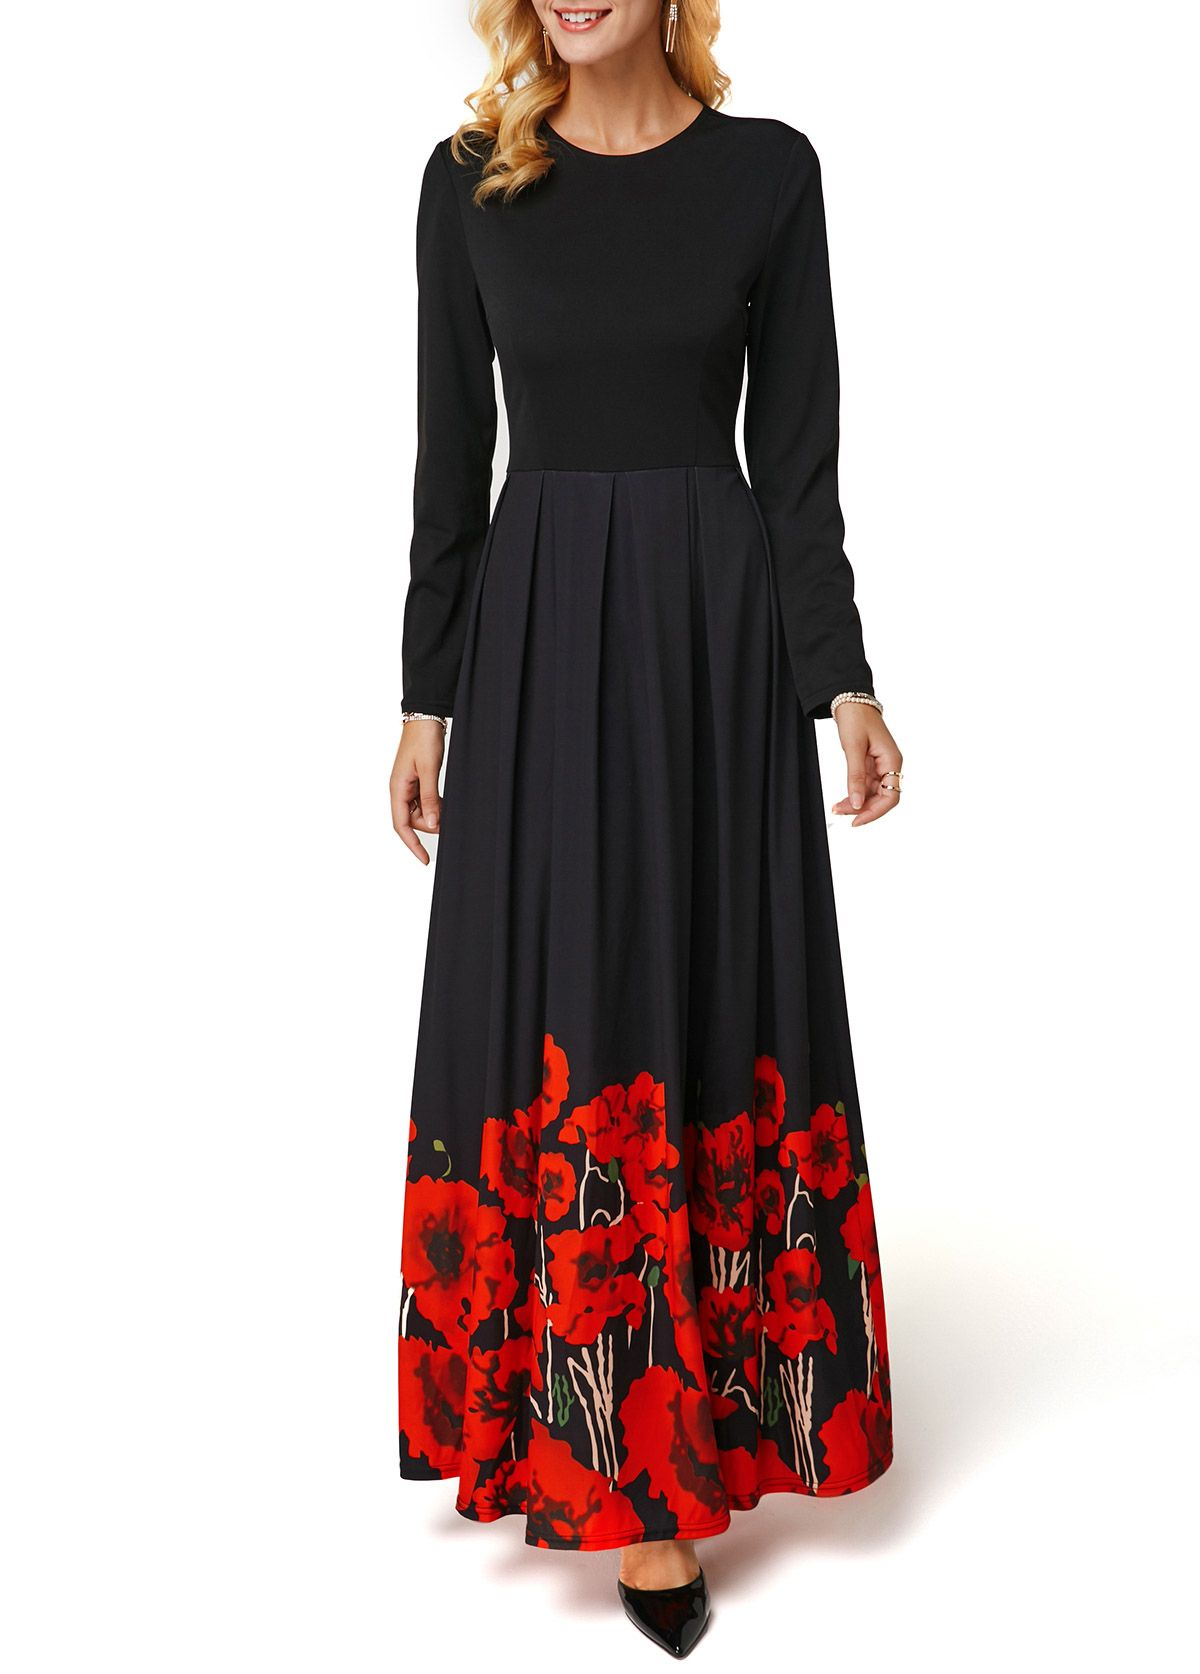 Flower print black long sleeve maxi dress in dresses